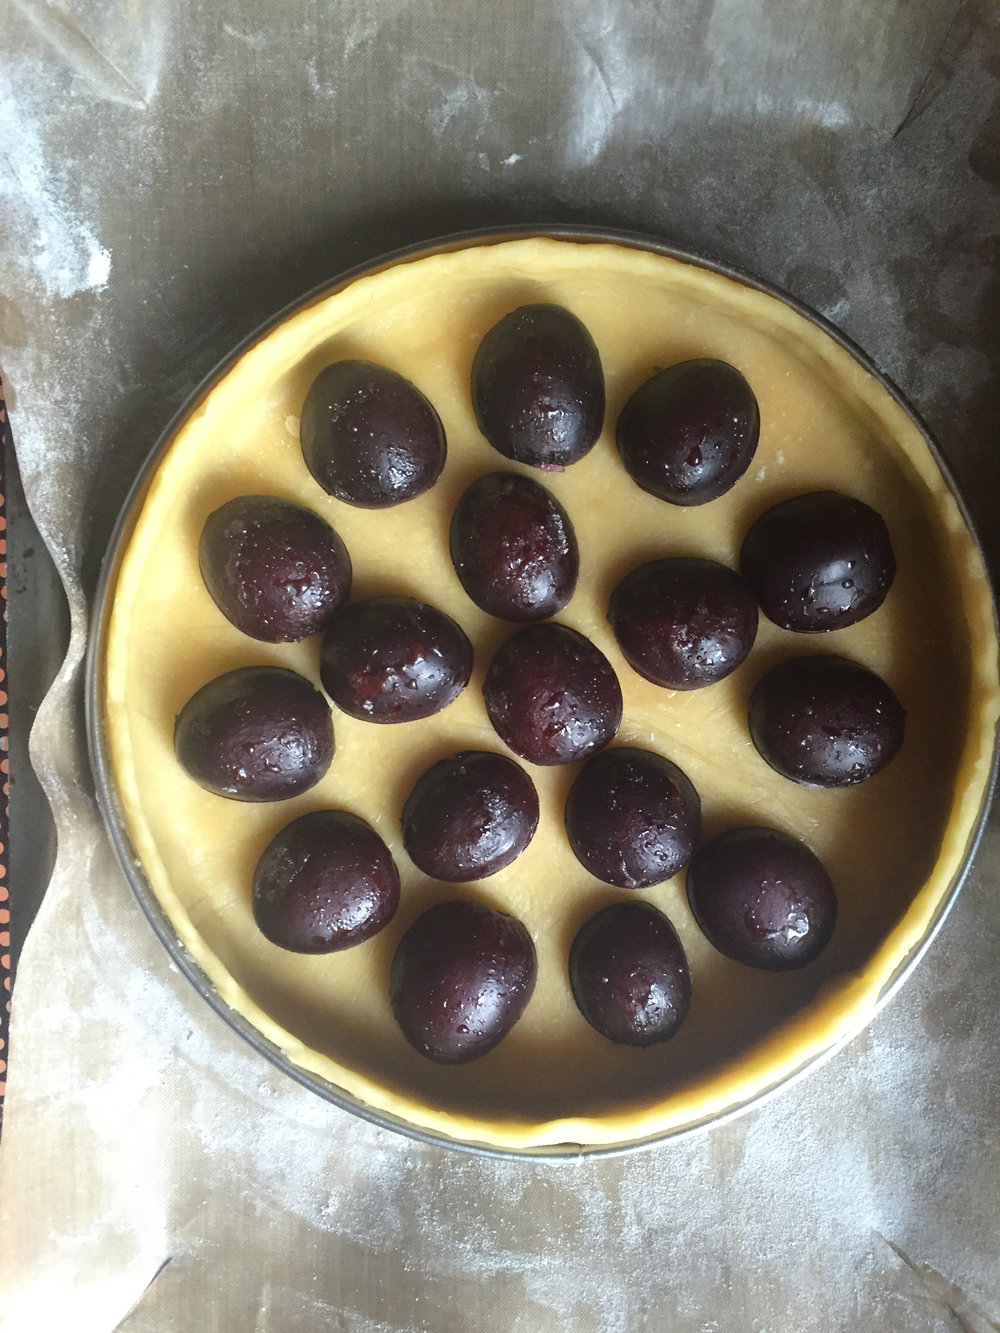 prepared plums in a prepared pastry